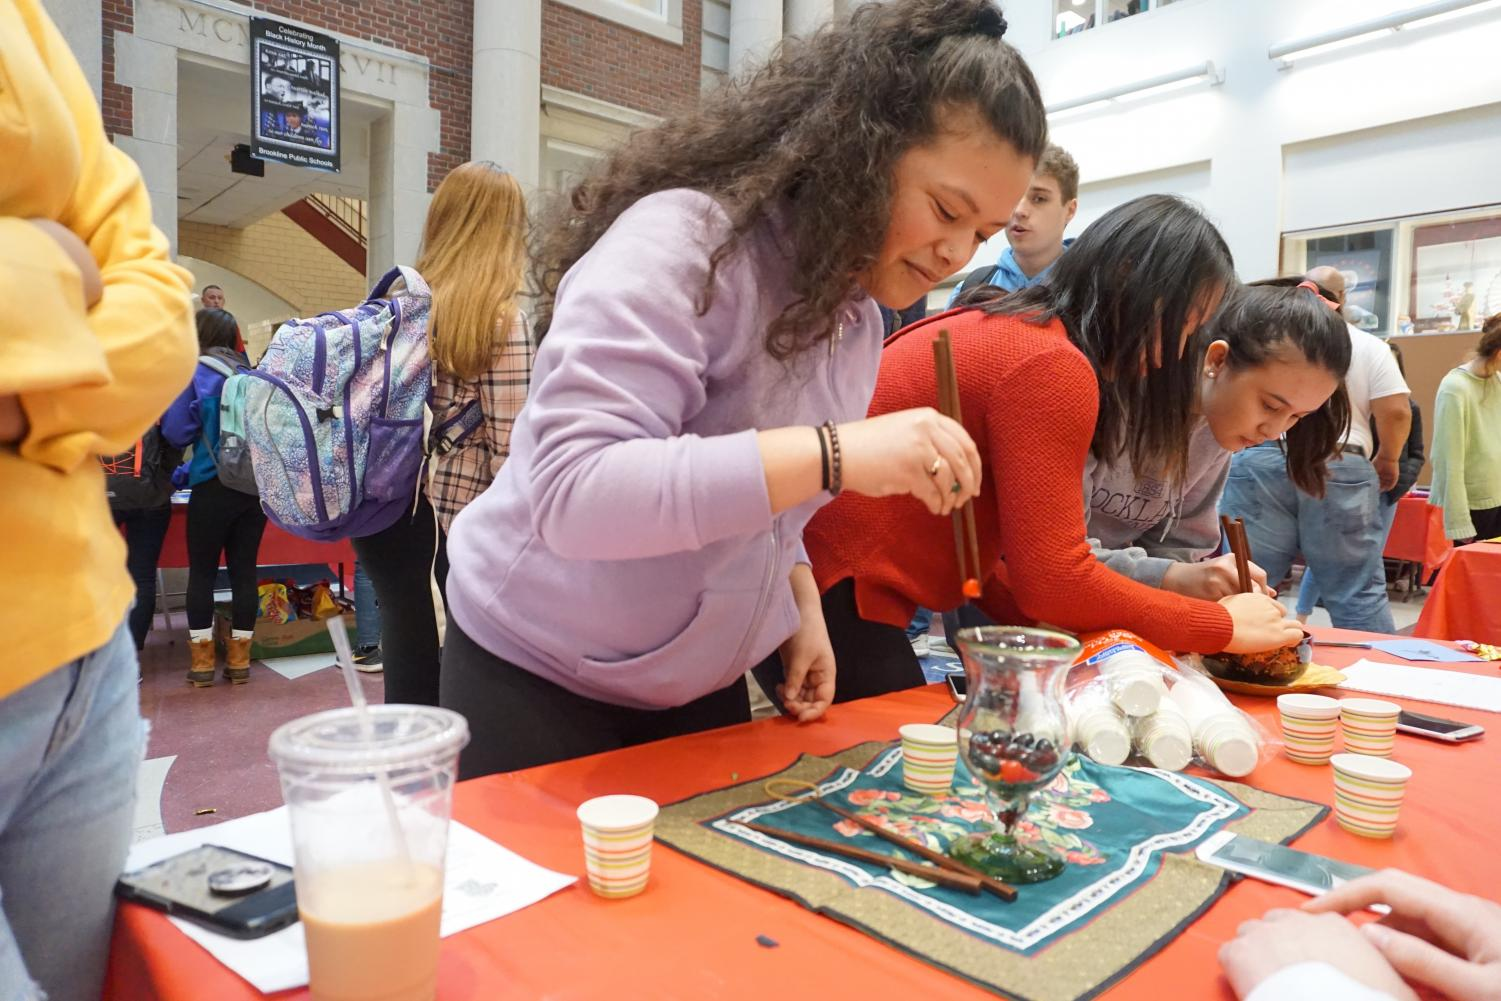 With her eye on the prize, sophomore Kaisa Sazama-Framil concentrates intently to land a slippery jelly bean in a paper cup. Students were timed to see who could move the most jelly beans from the glass with chopsticks.